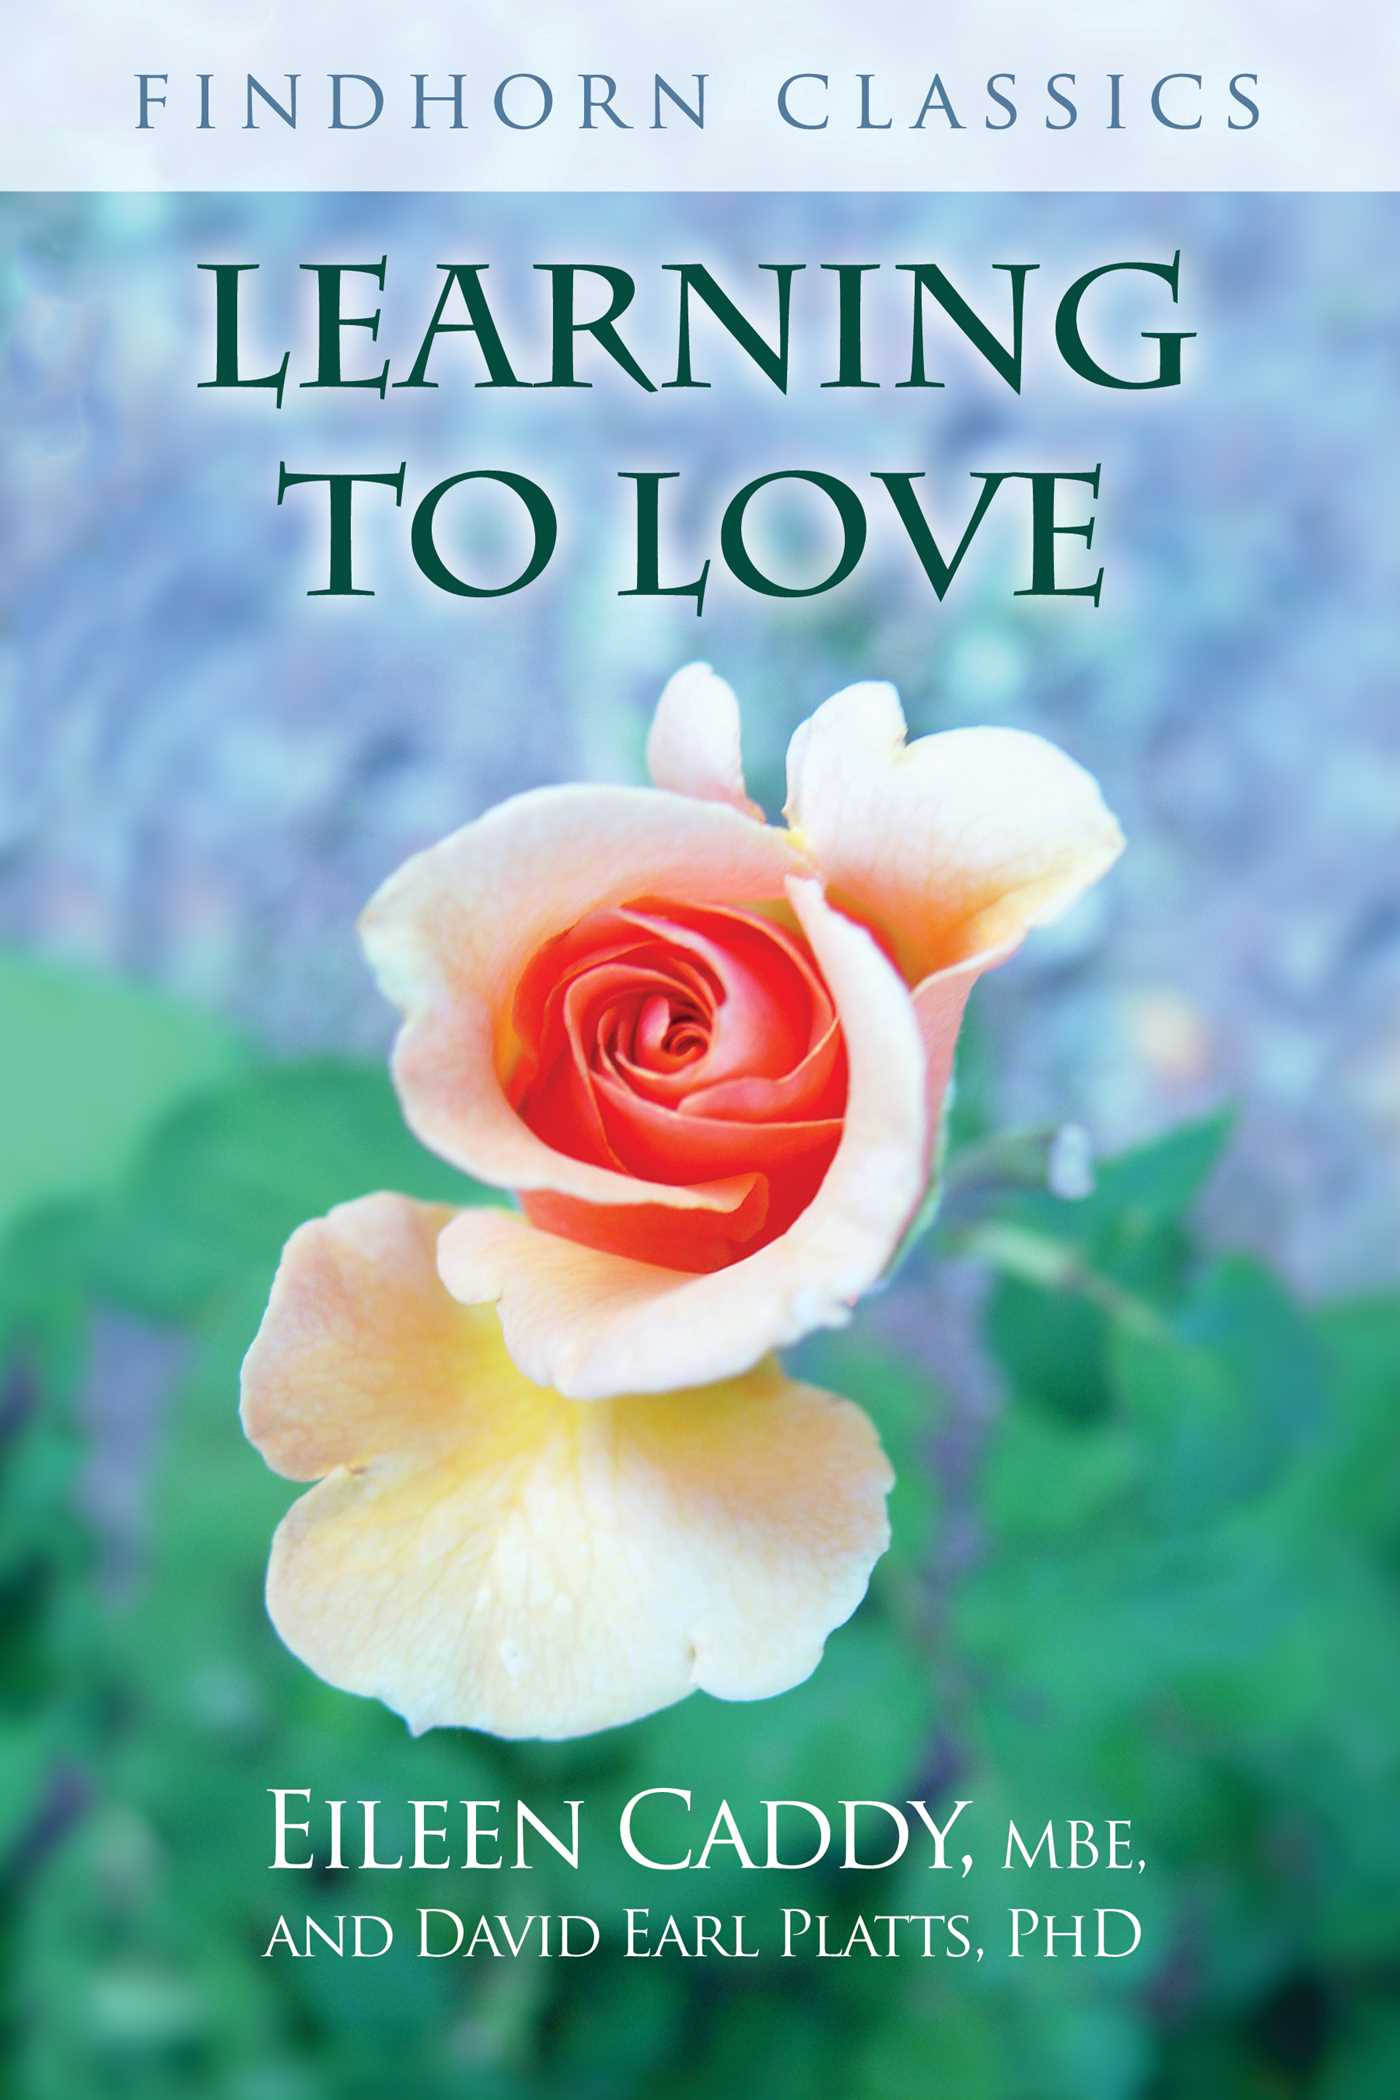 Learning to love 9781620558355 hr